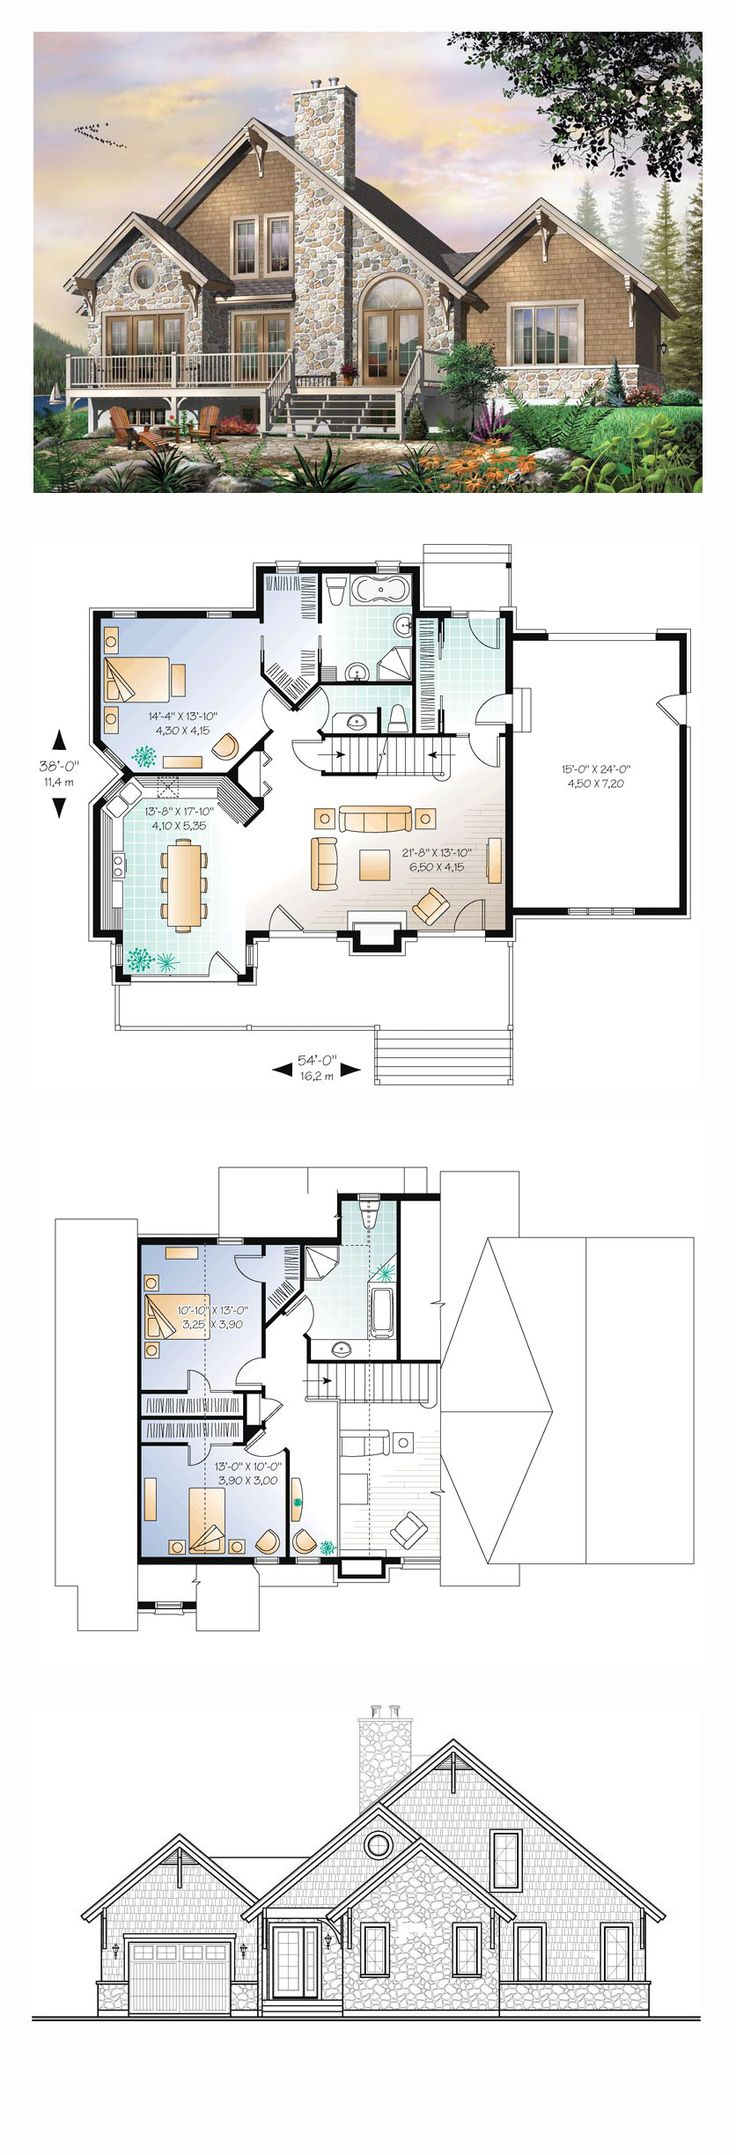 25 best ideas about coastal house plans on pinterest Coastal living floor plans